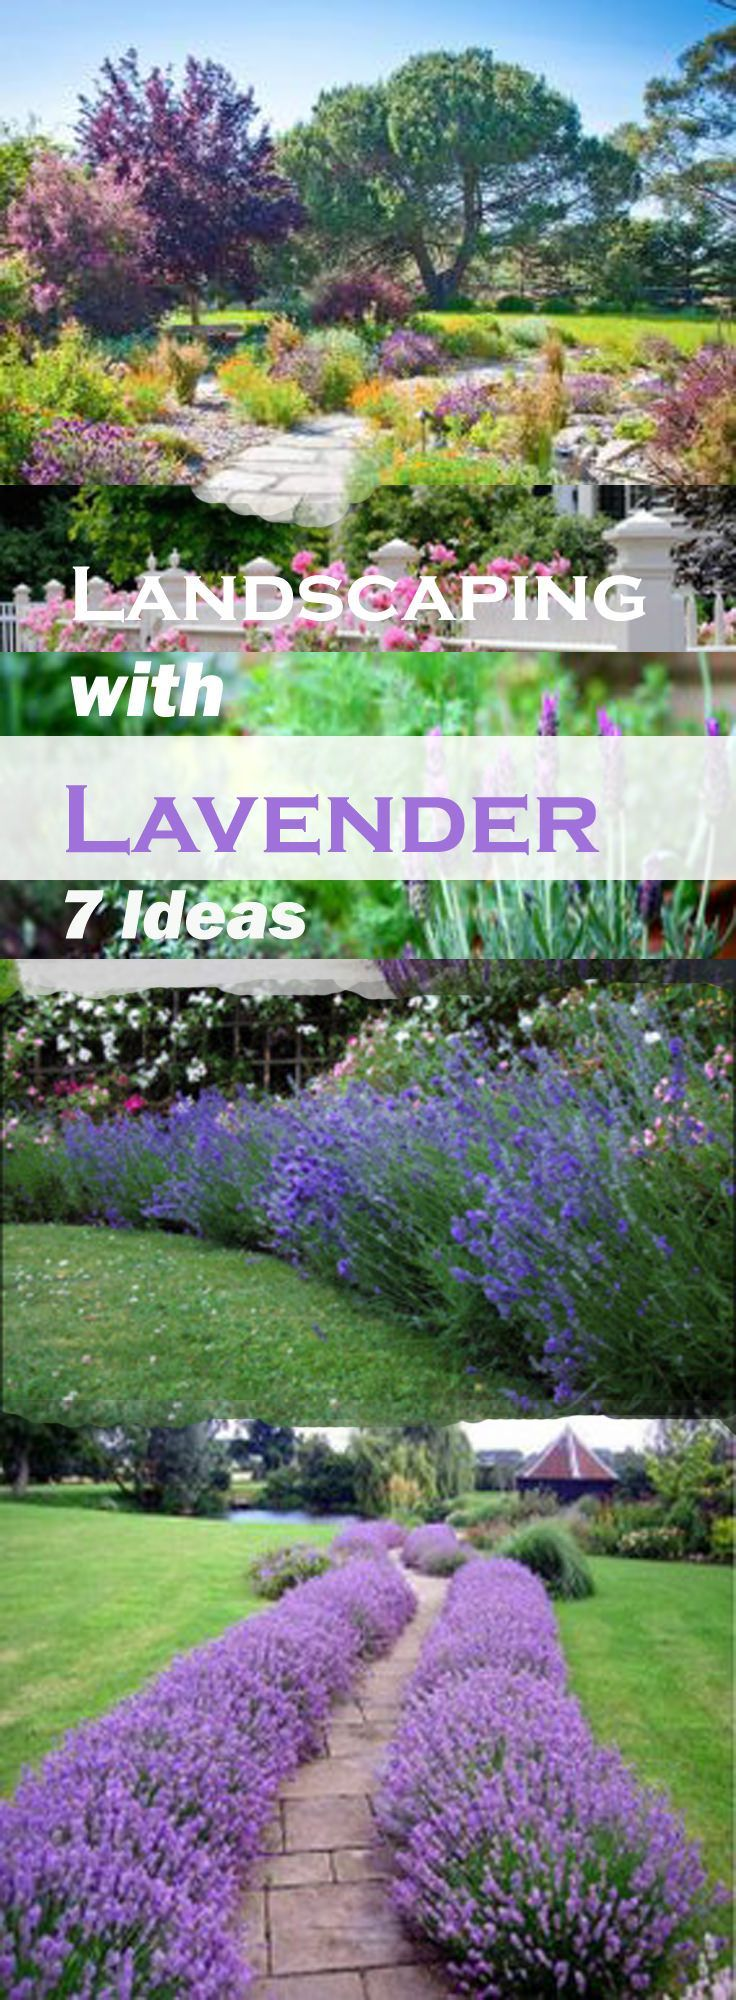 best 25 landscaping ideas ideas on pinterest front landscaping ideas front yard landscaping and yard landscaping - Home Landscape Design Ideas